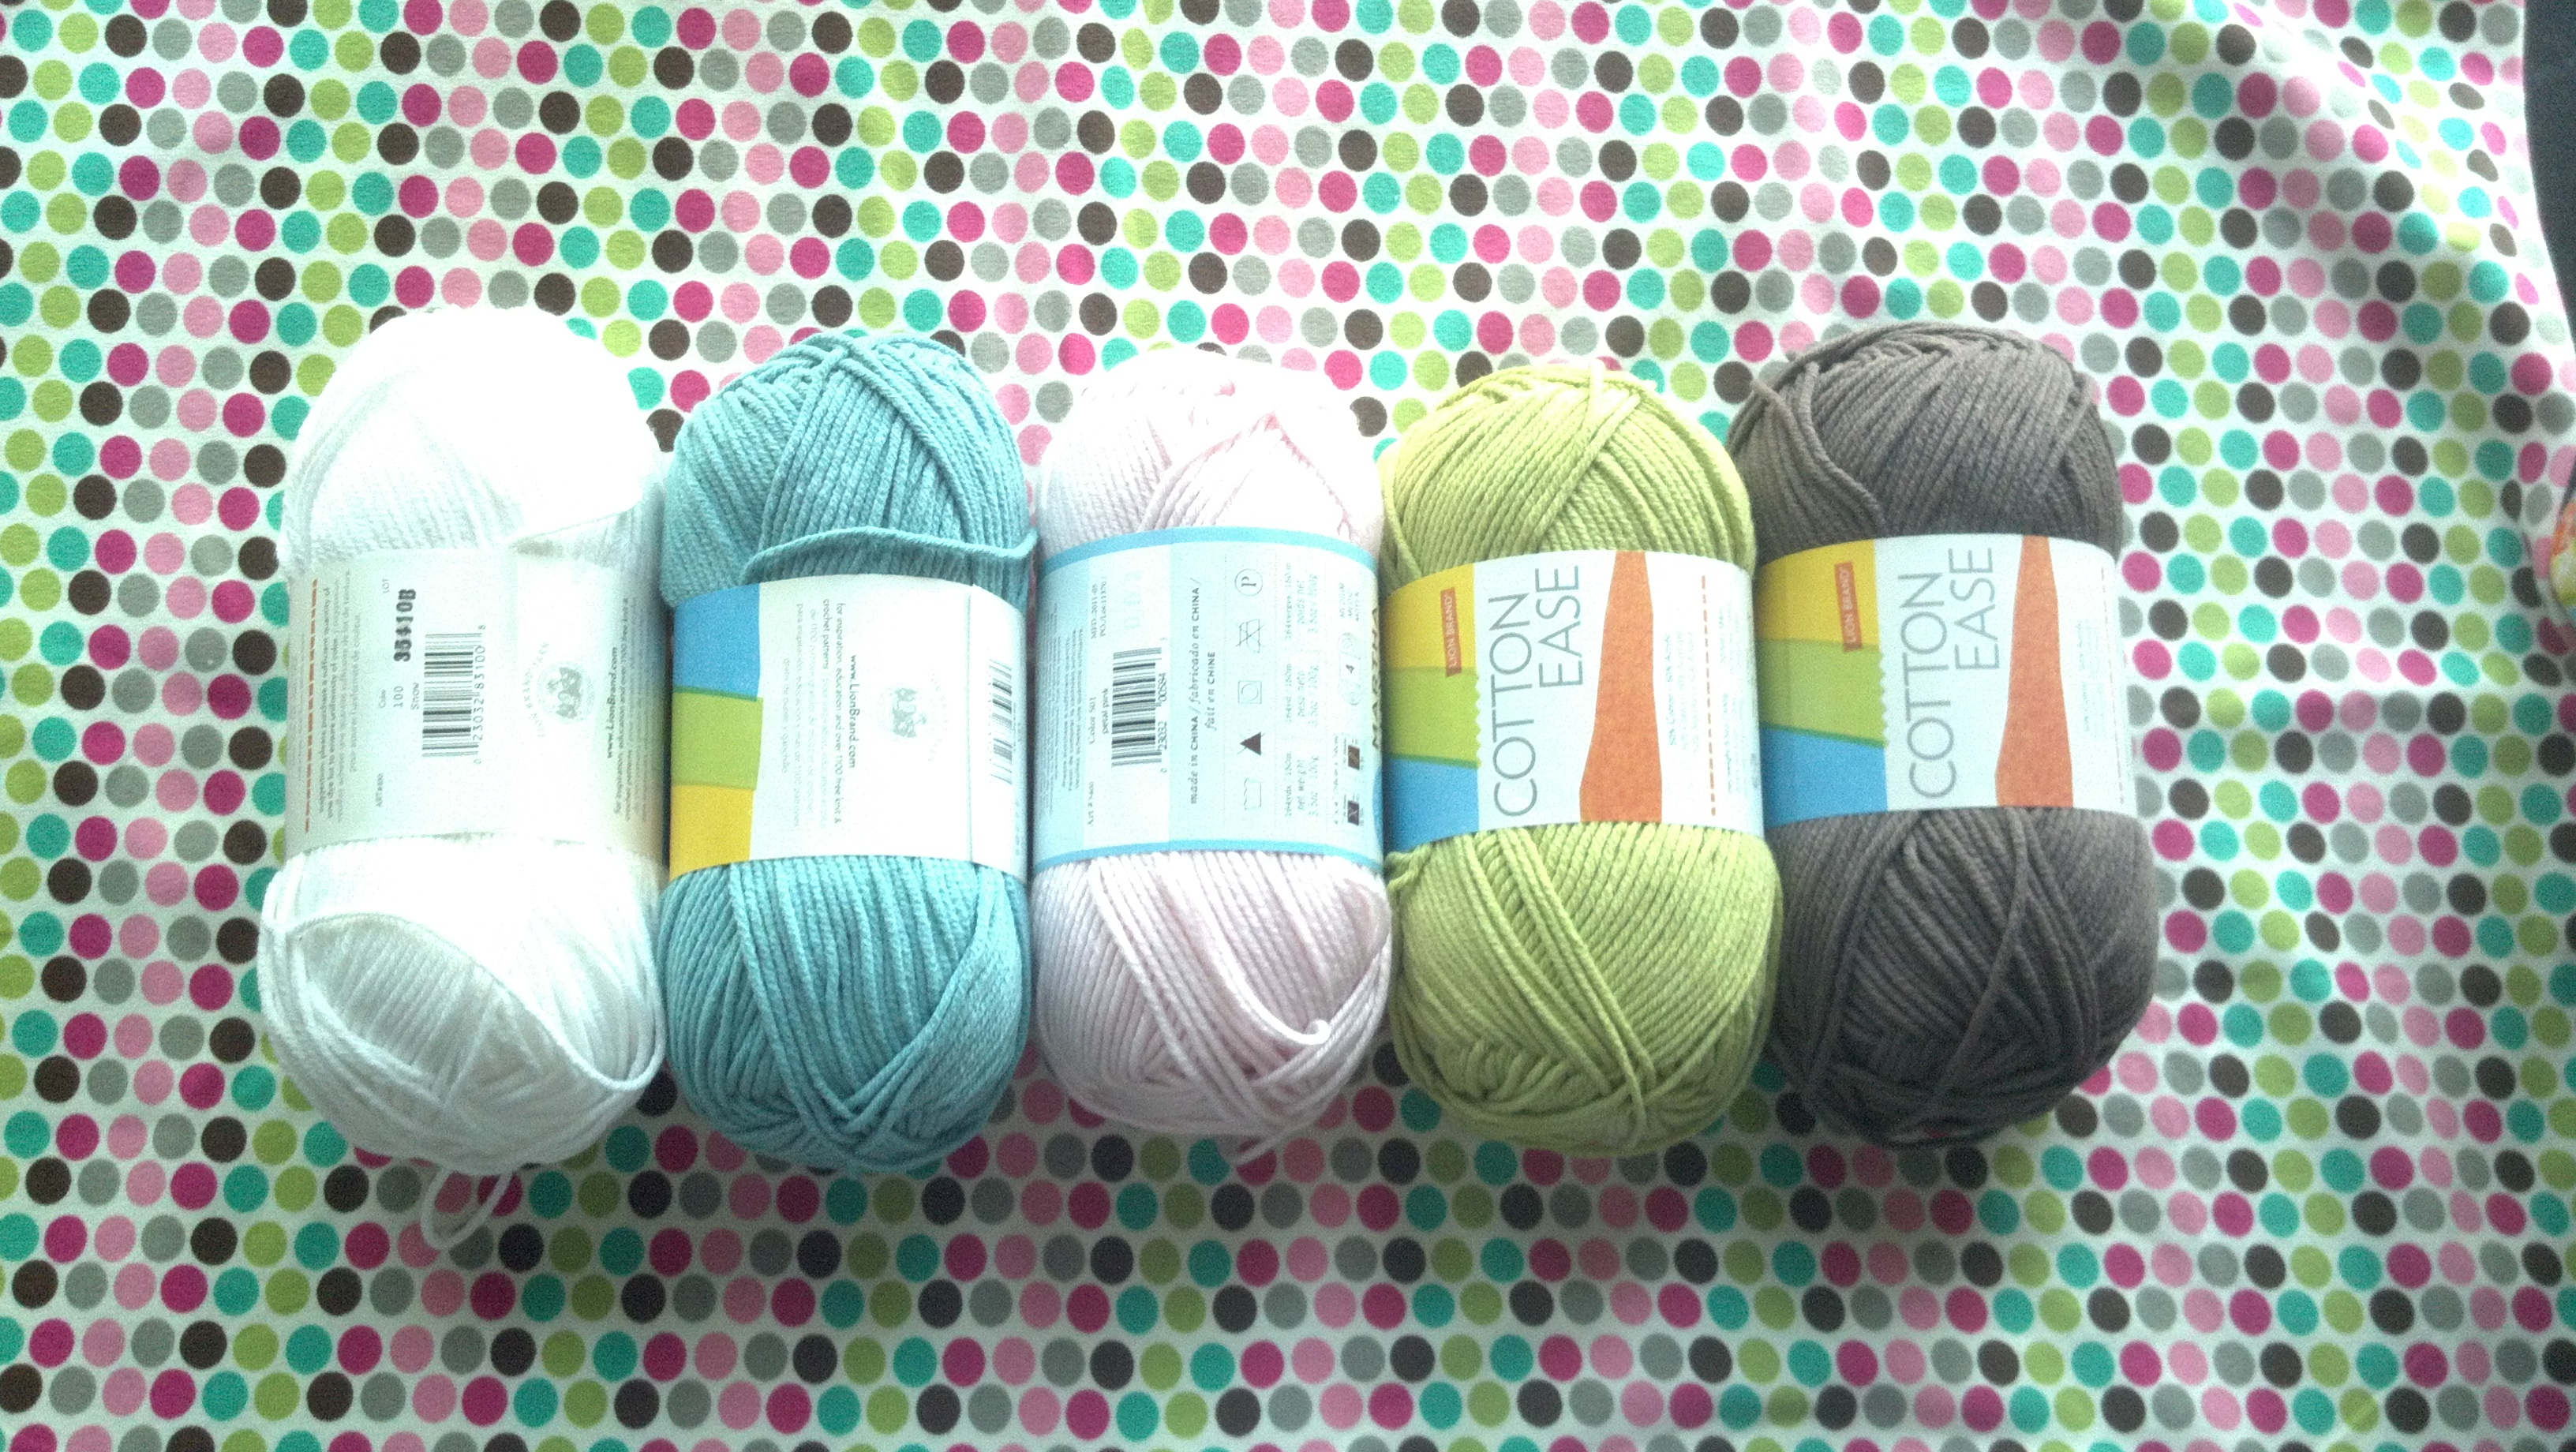 simply-cotton-yarn-joann | tolmema